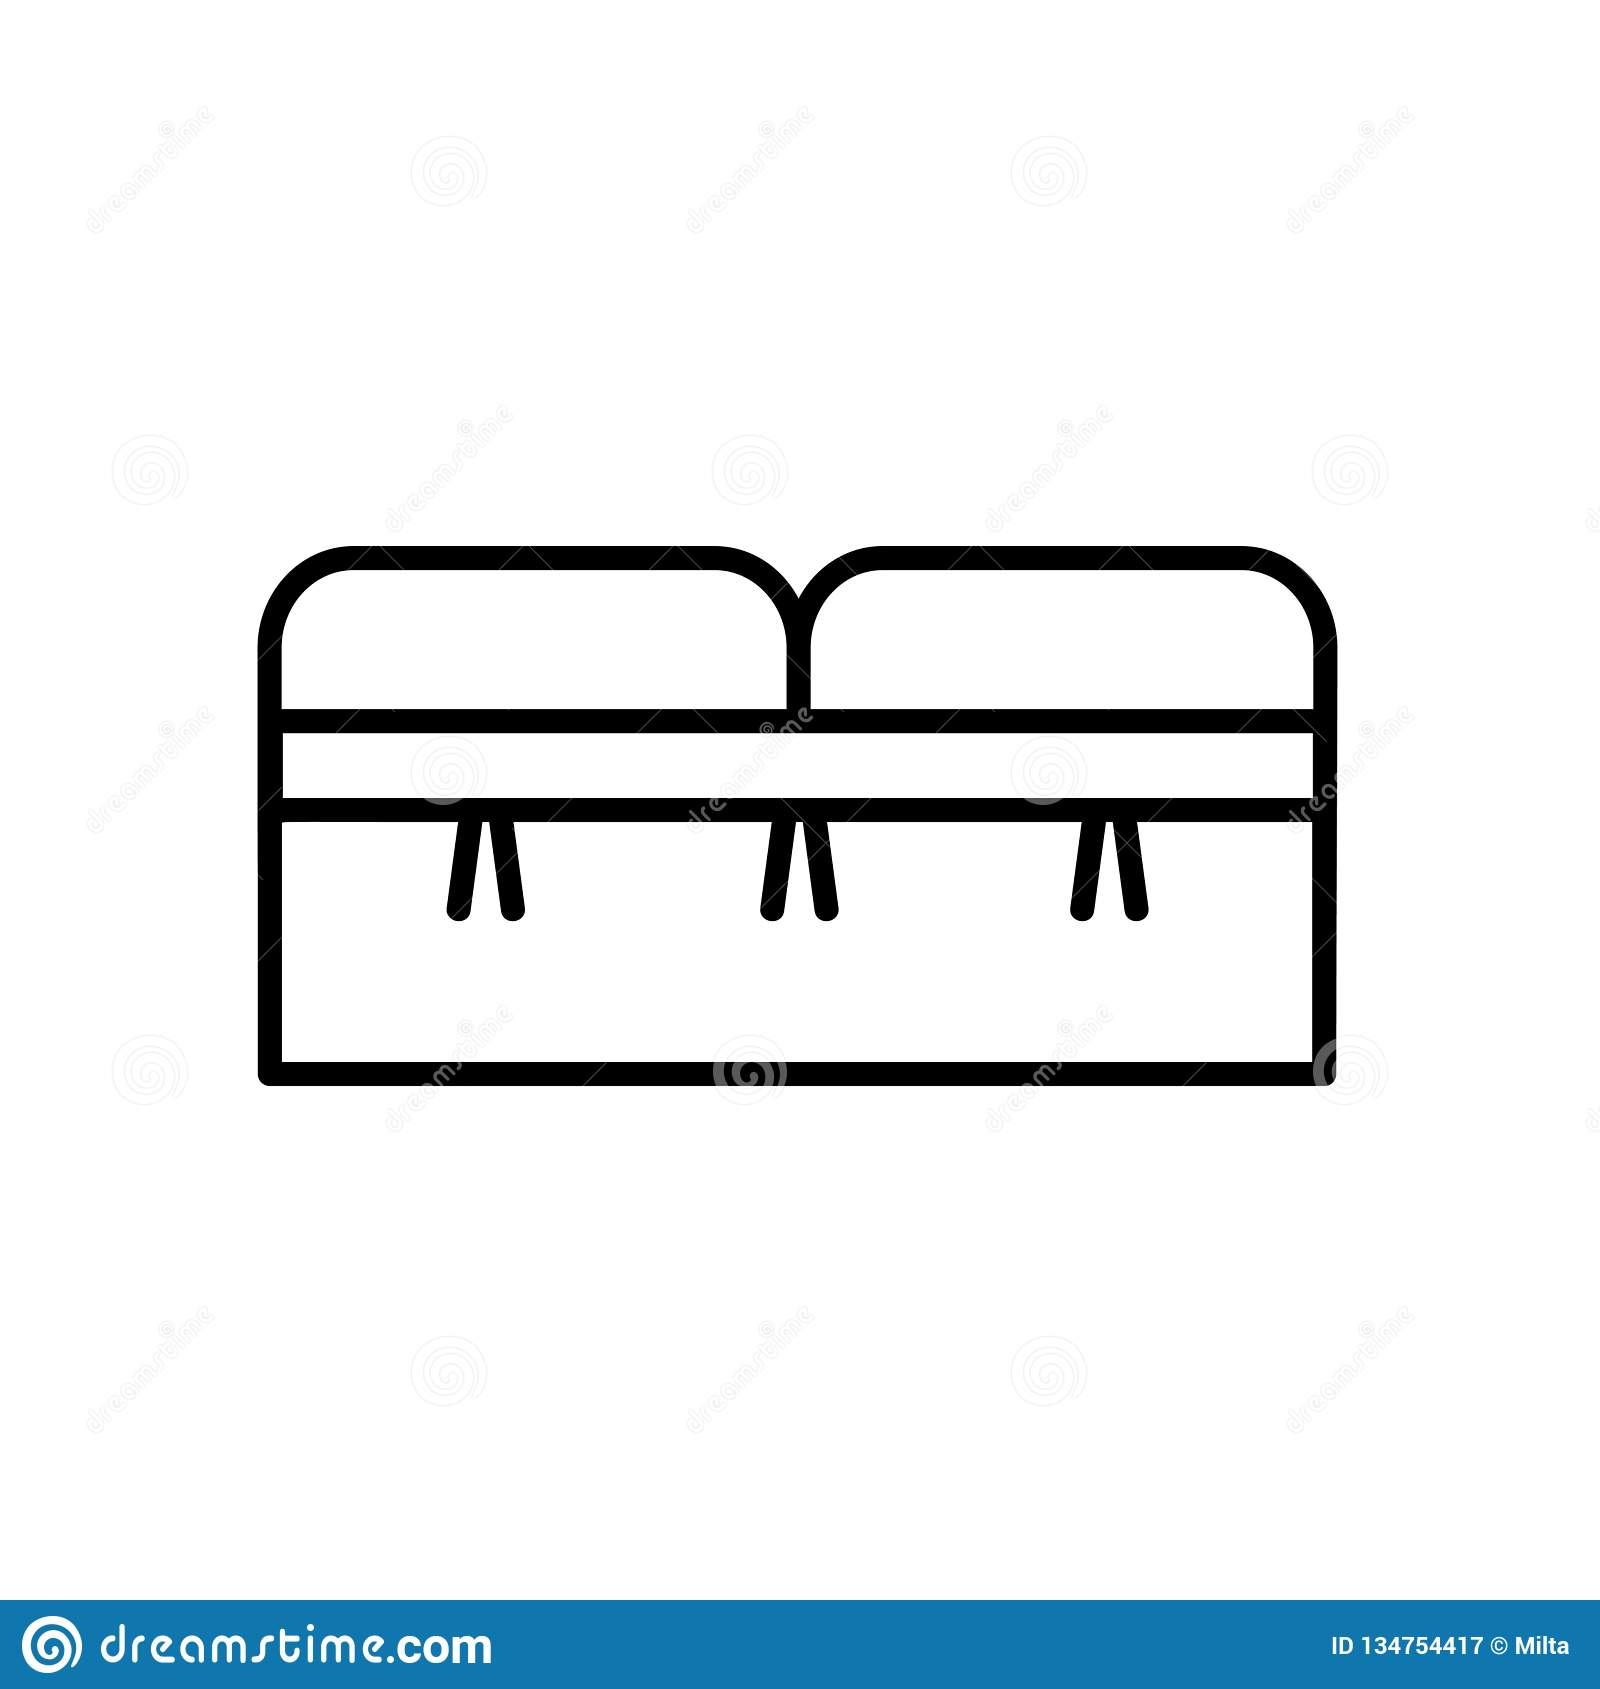 https www dreamstime com upholstered storage leather bench seat entryway patio furniture vector line icon isolated object image134754417